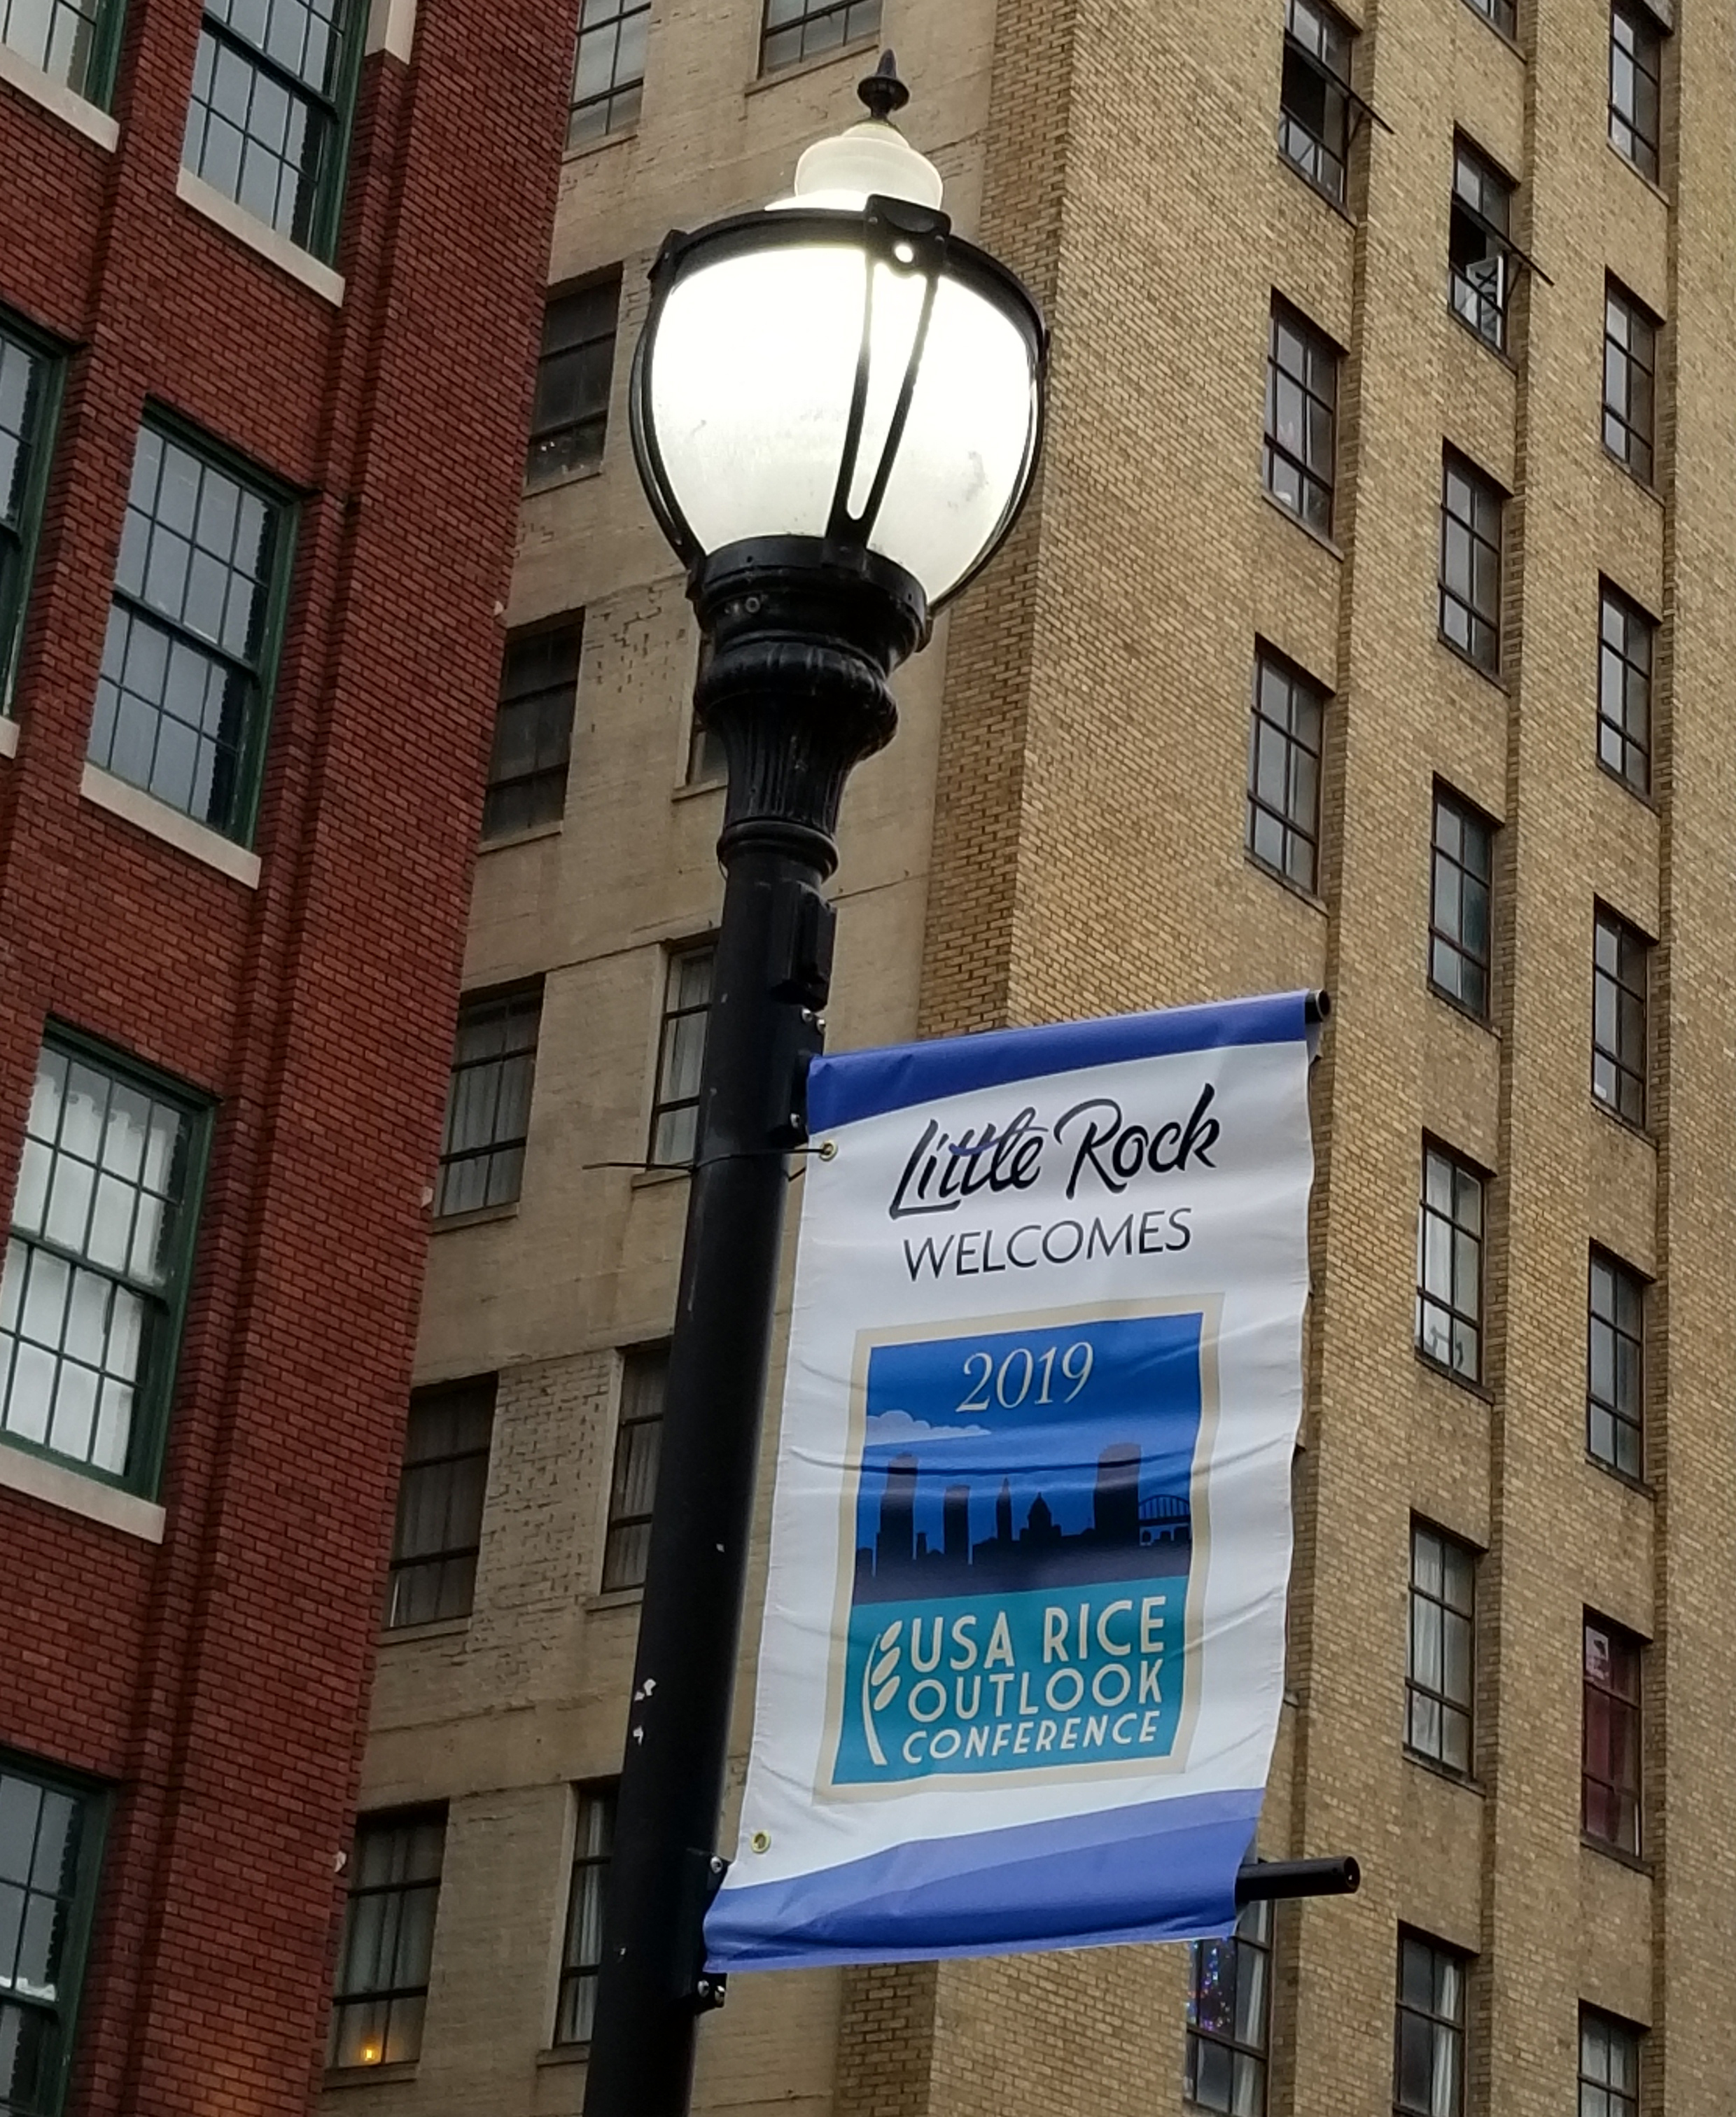 Little Rock Welcomes 2019 USA Rice Outlook Conference street sign